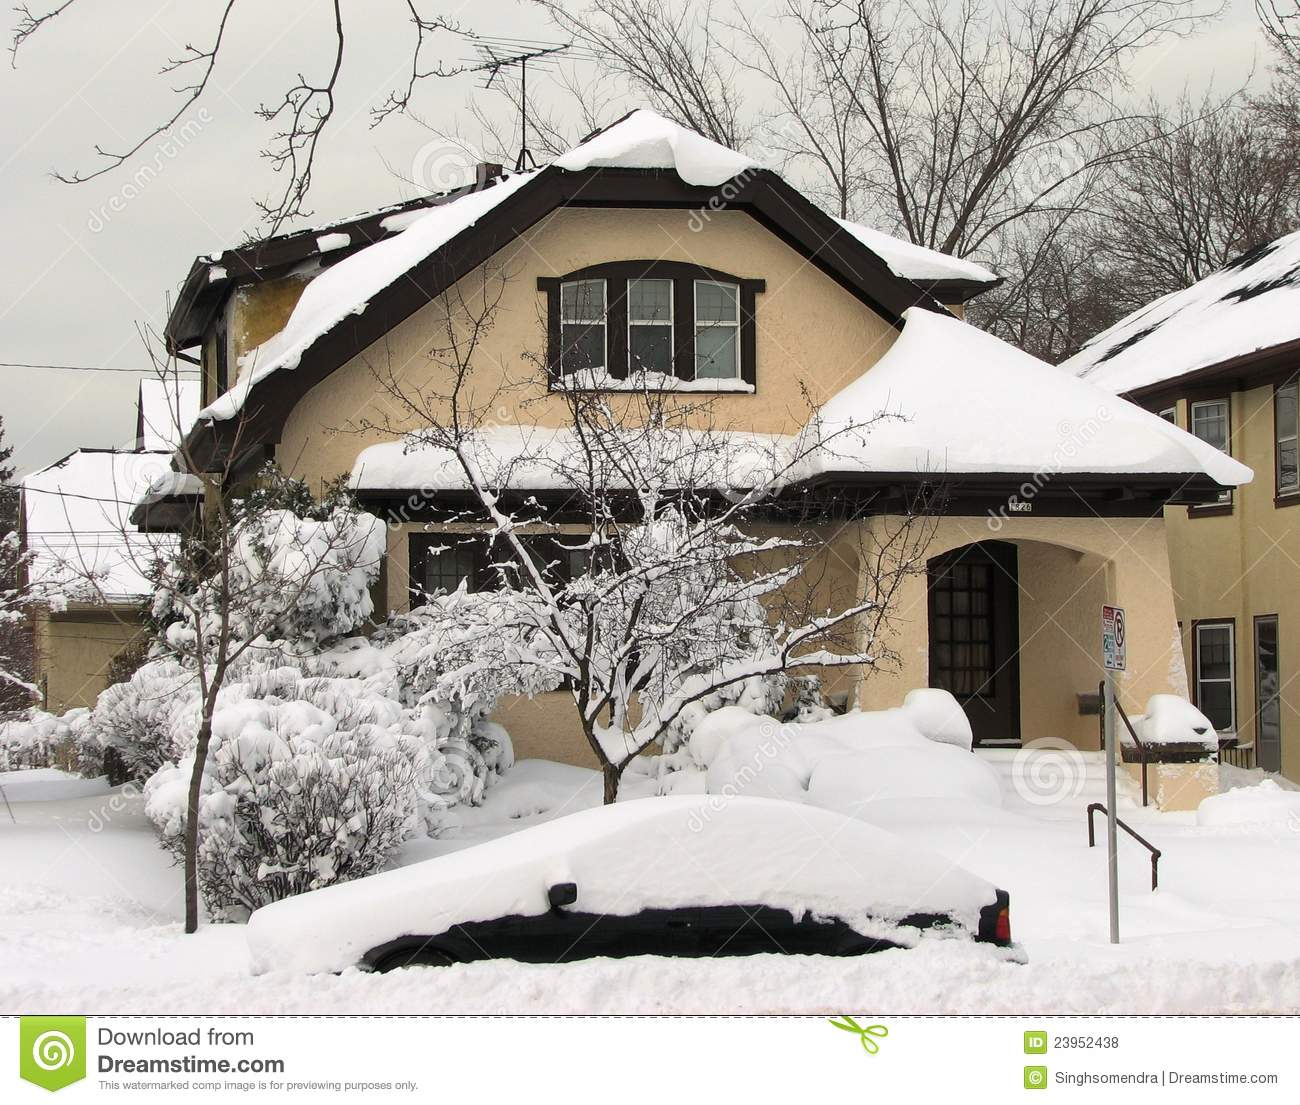 Pictures For House: Typical Wisconsin House After Heavy Snow Fall Stock Photo